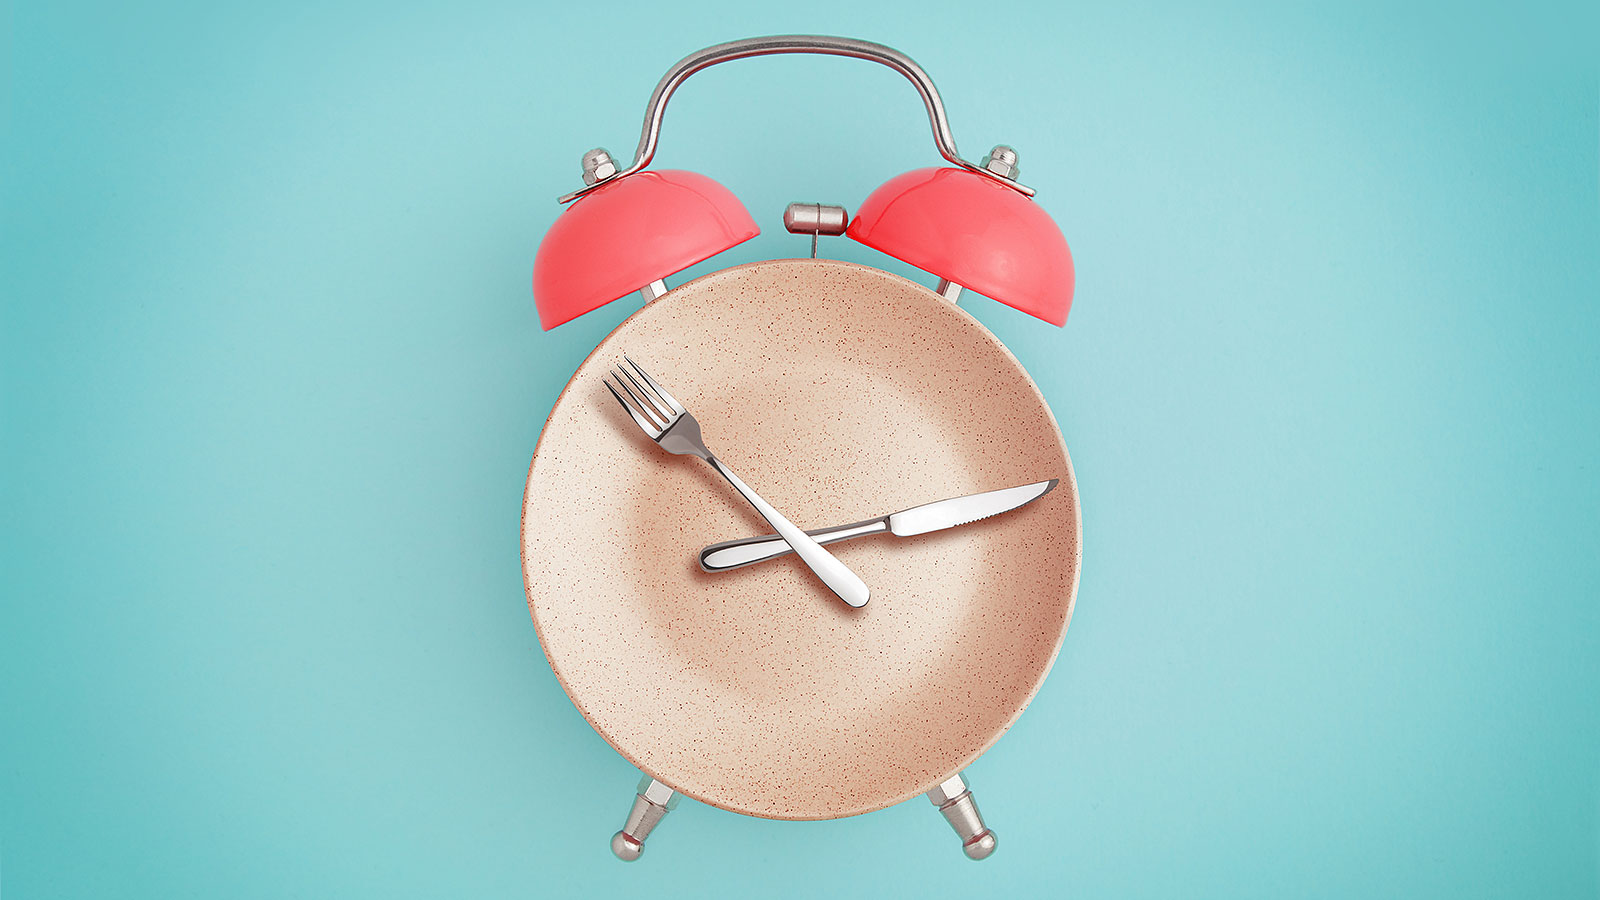 Intermittent fasting is not a miracle solution